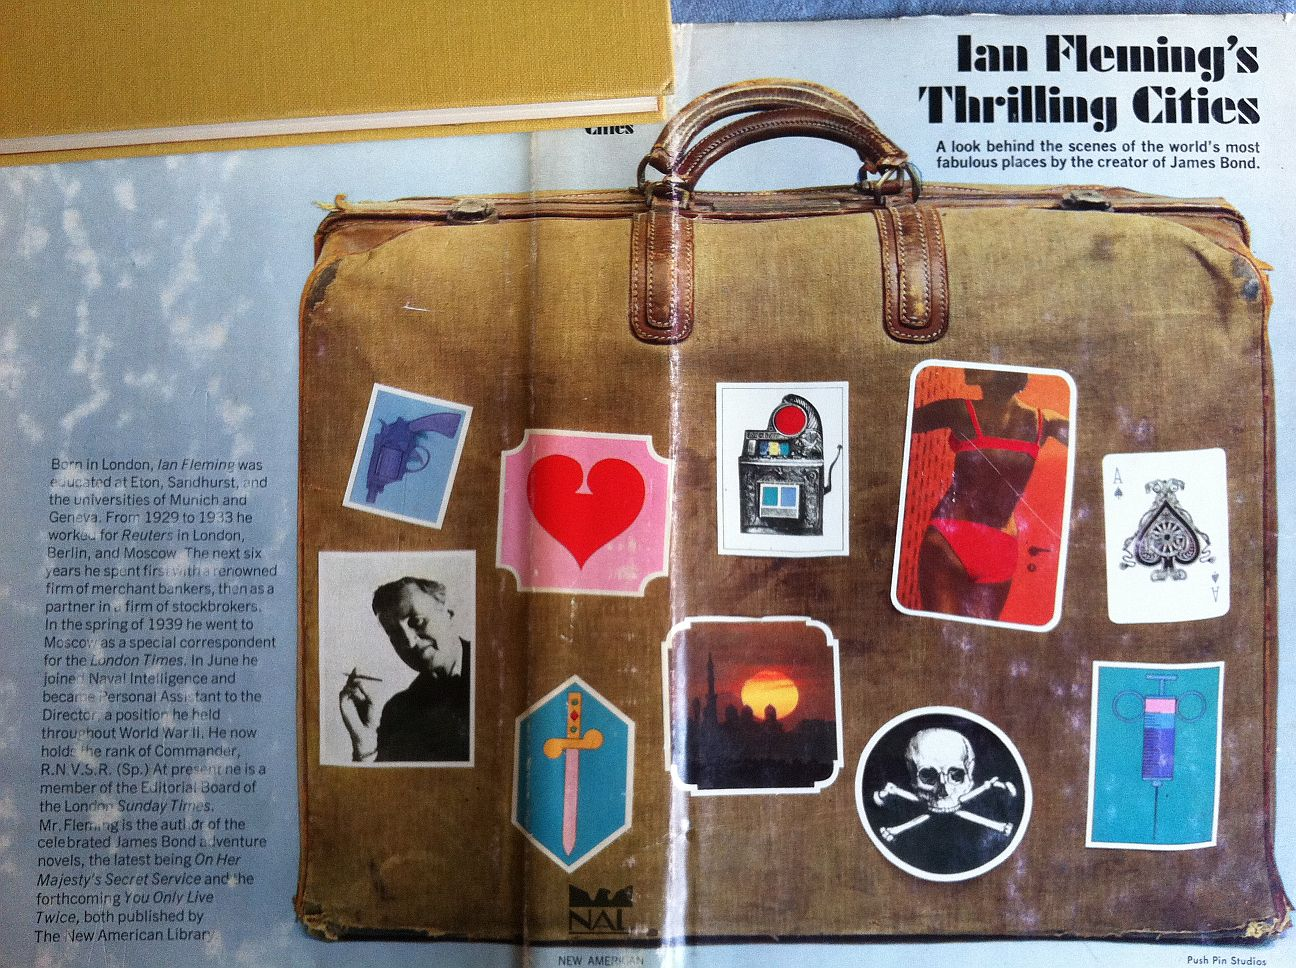 Ian Fleming.  Thrilling Cities, A look behind the scenes of the world's most fabulous places by the creator of James Bond . New York: New American Library 1964, NAL BOOK CLUB EDITION. Édition originale américaine, couverture et vignettes de Milton Glaser pour Push Pin Studios.